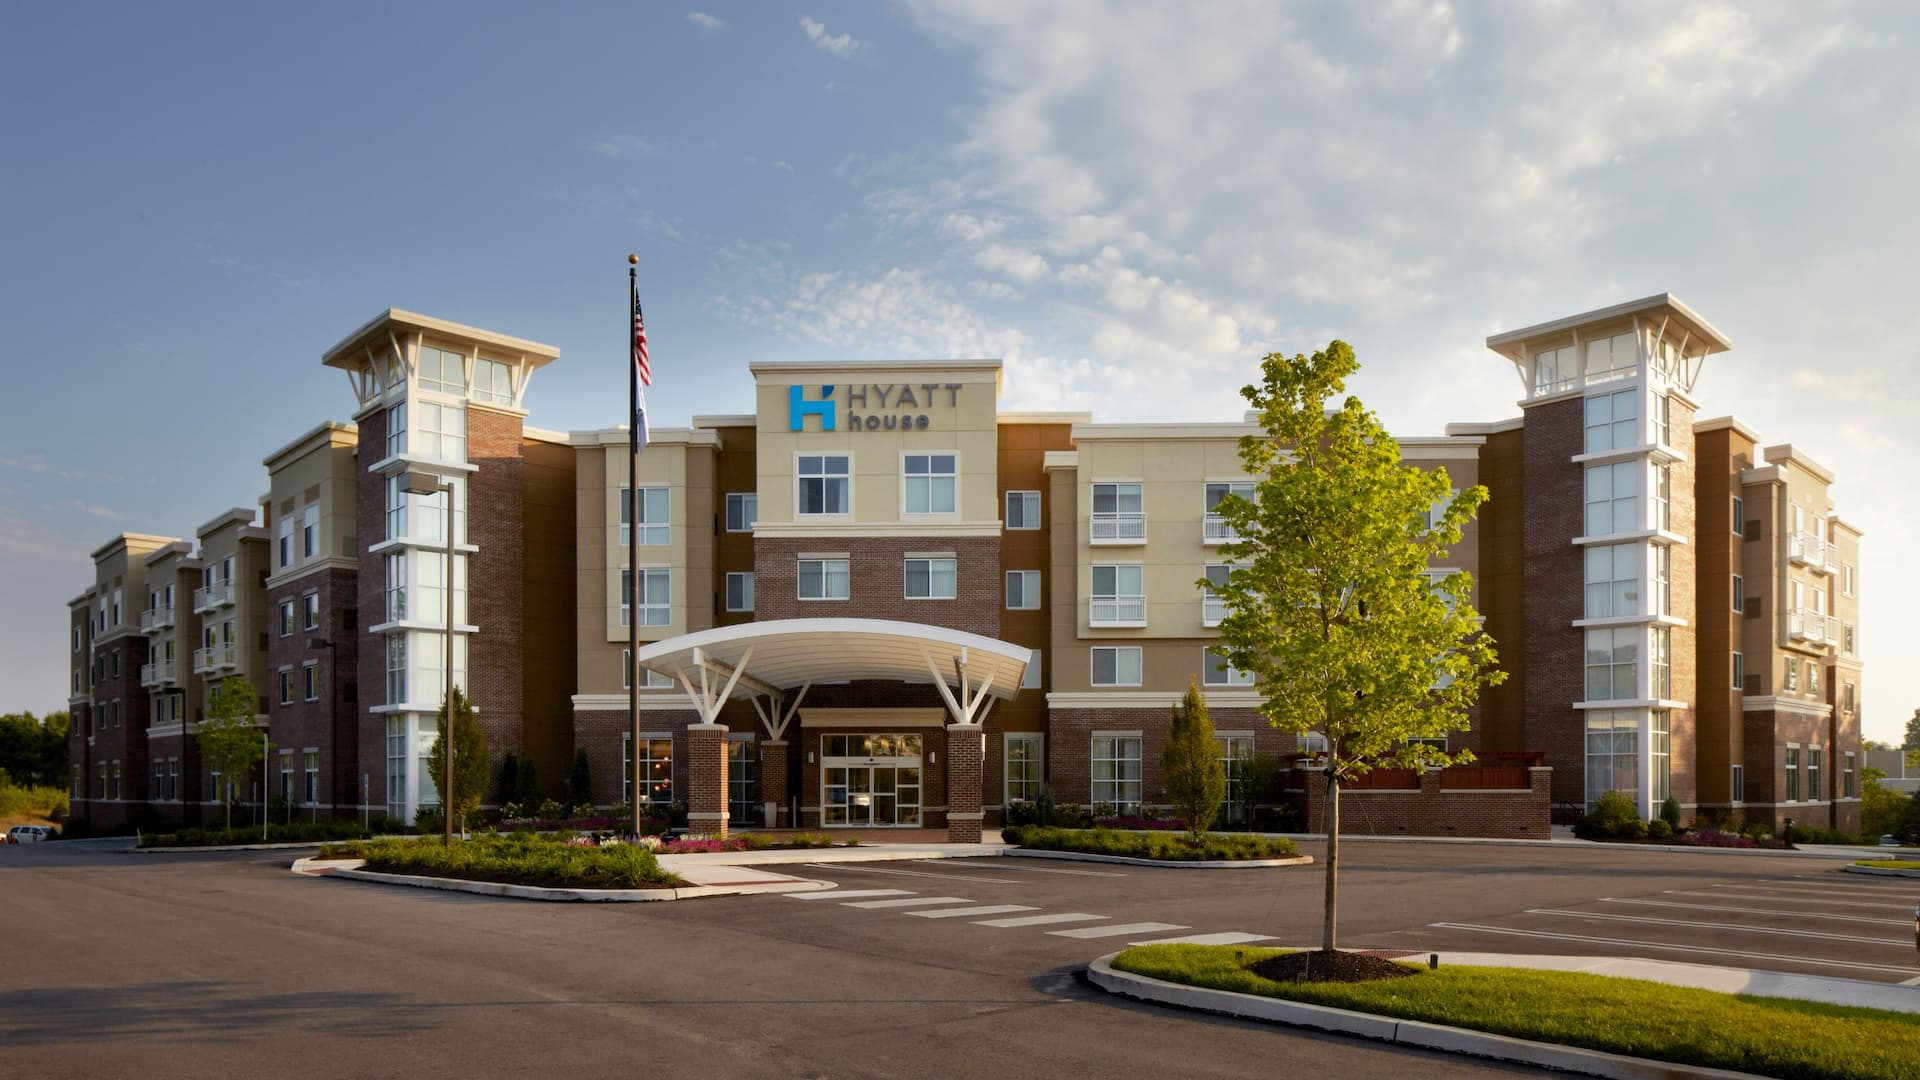 HYATT HOUSE PHILADELPHIA/KING OF PRUSSIA Exterior